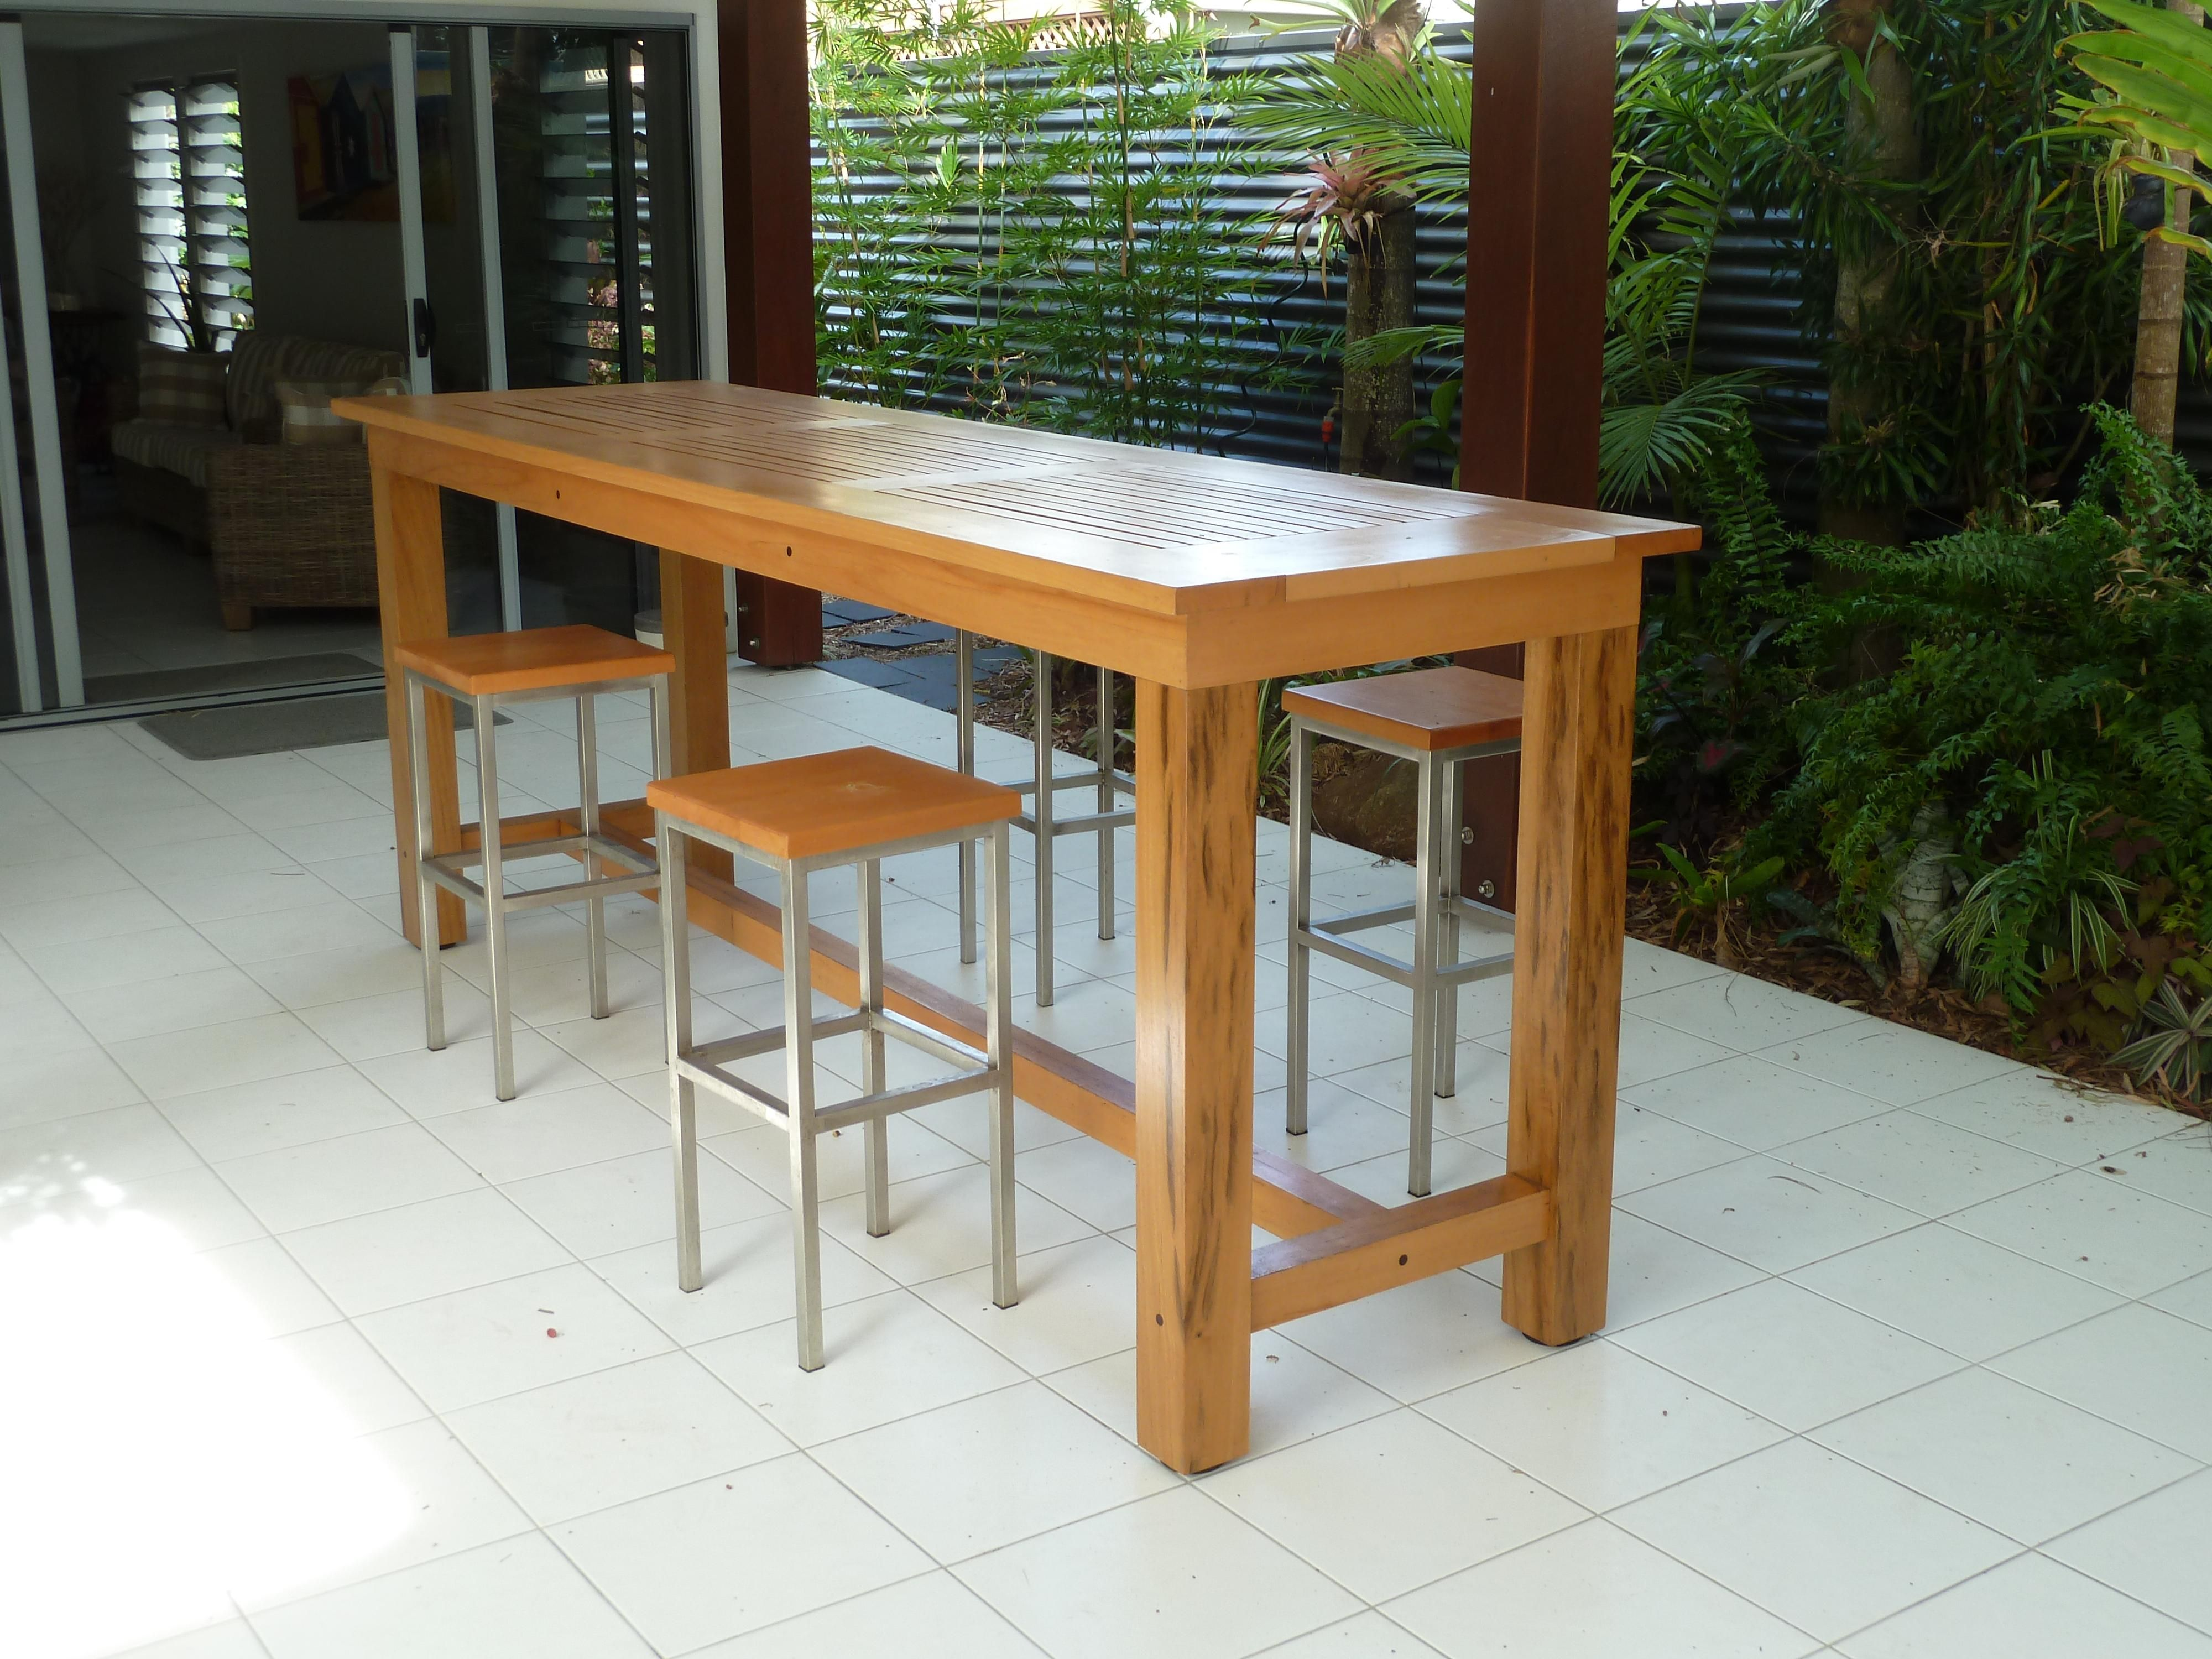 Outdoor Bar Designs | Outdoor: Bar table and stools, outdoor table ...